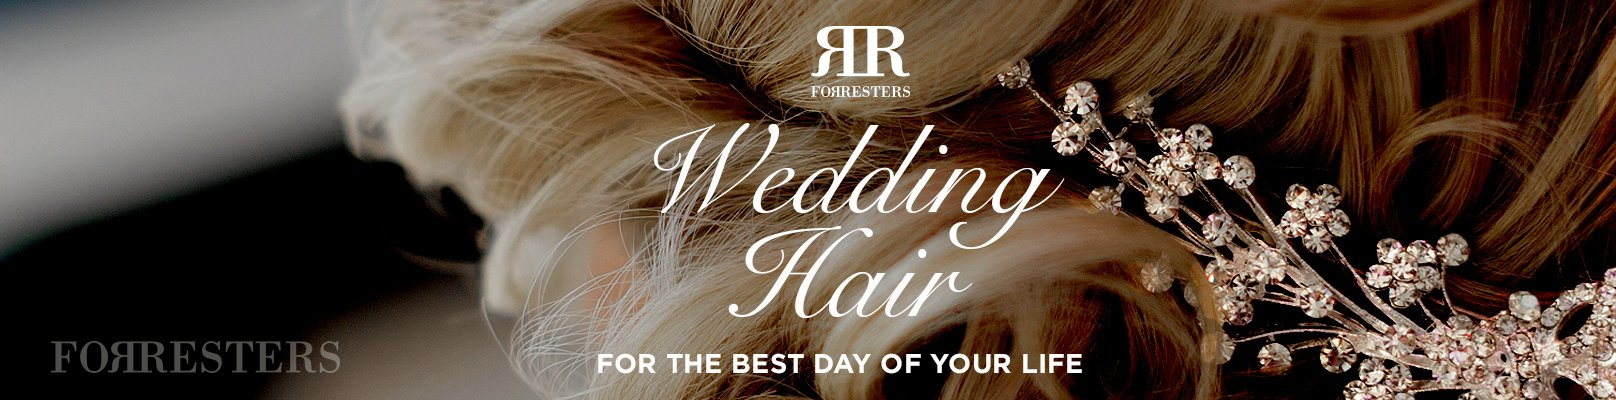 Laura Summersby Forresters Pangbourne Wedding Hair Planner and Stylist